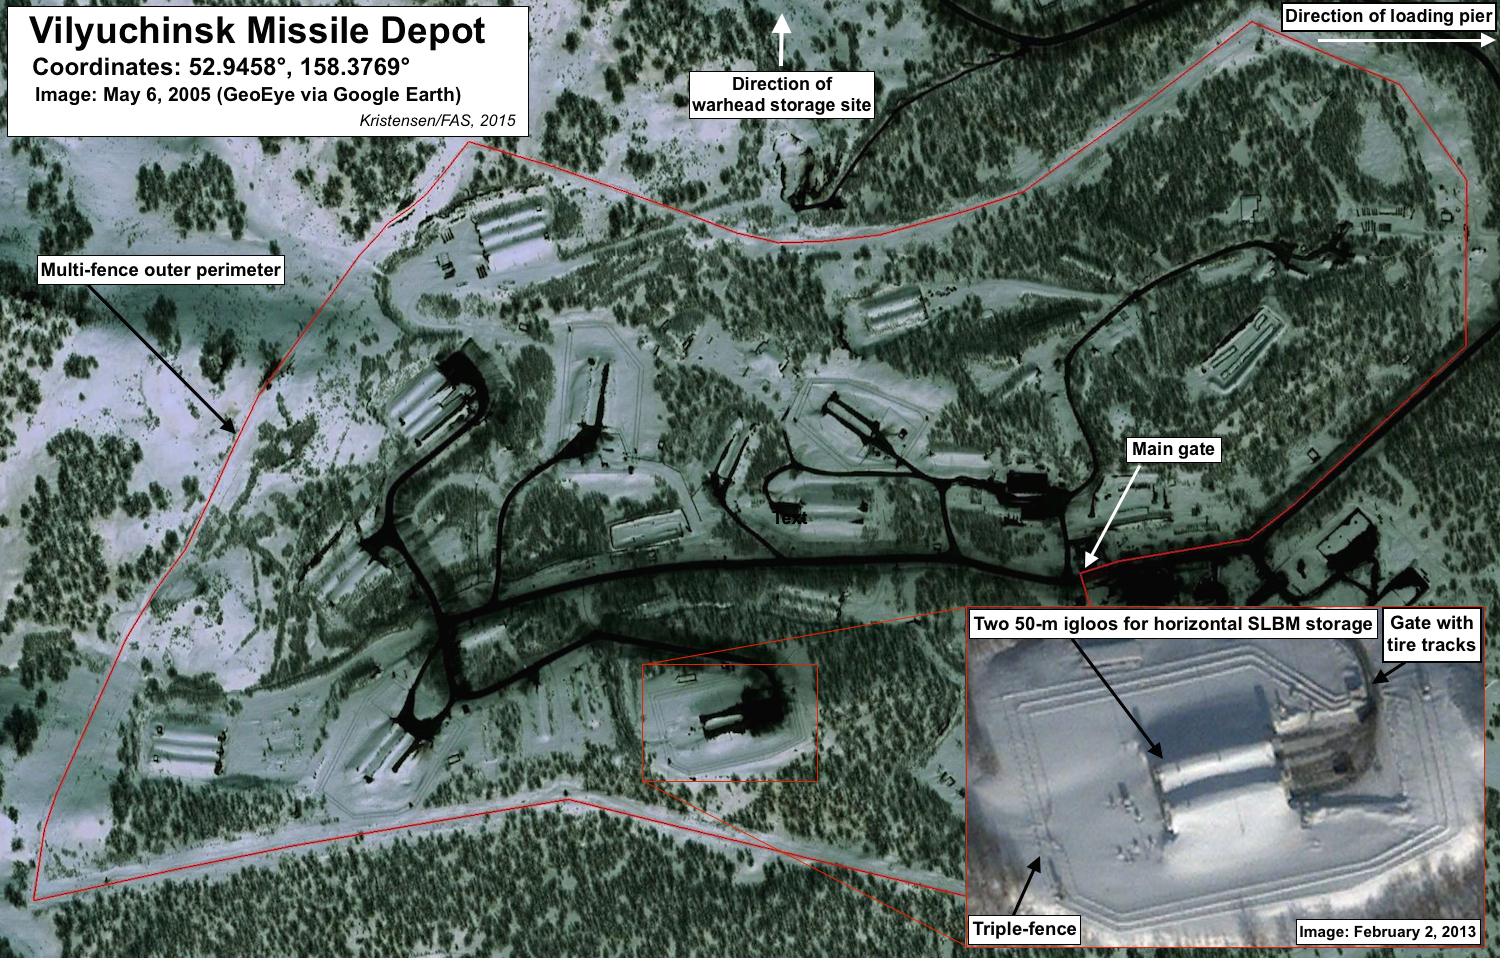 Vilyuchinsk missile depot. Click to see full size image.